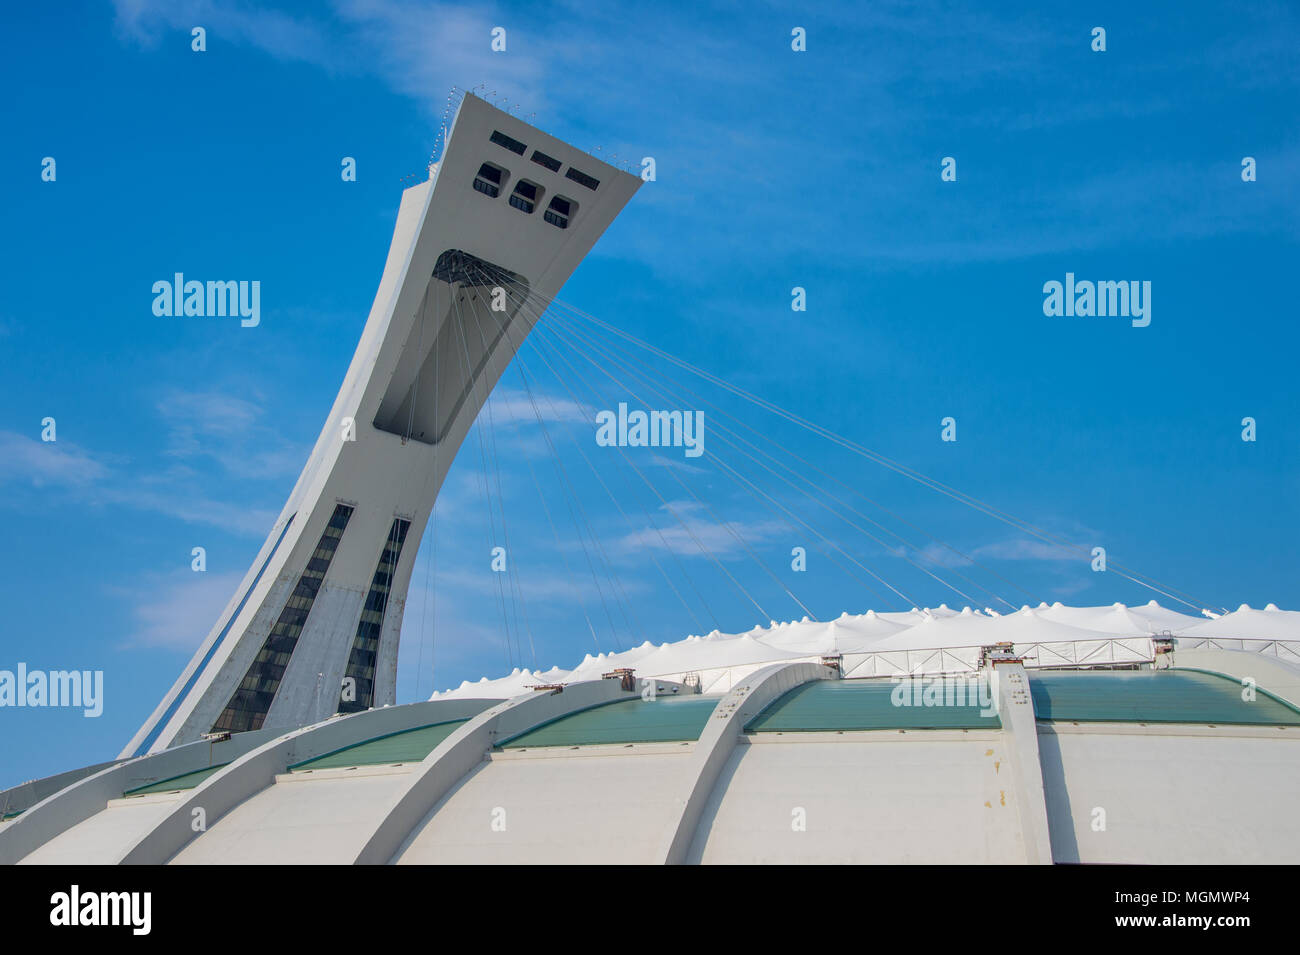 Montreal, CA - 28 April 2018: The Montreal Olympic Stadium and inclined tower. - Stock Image